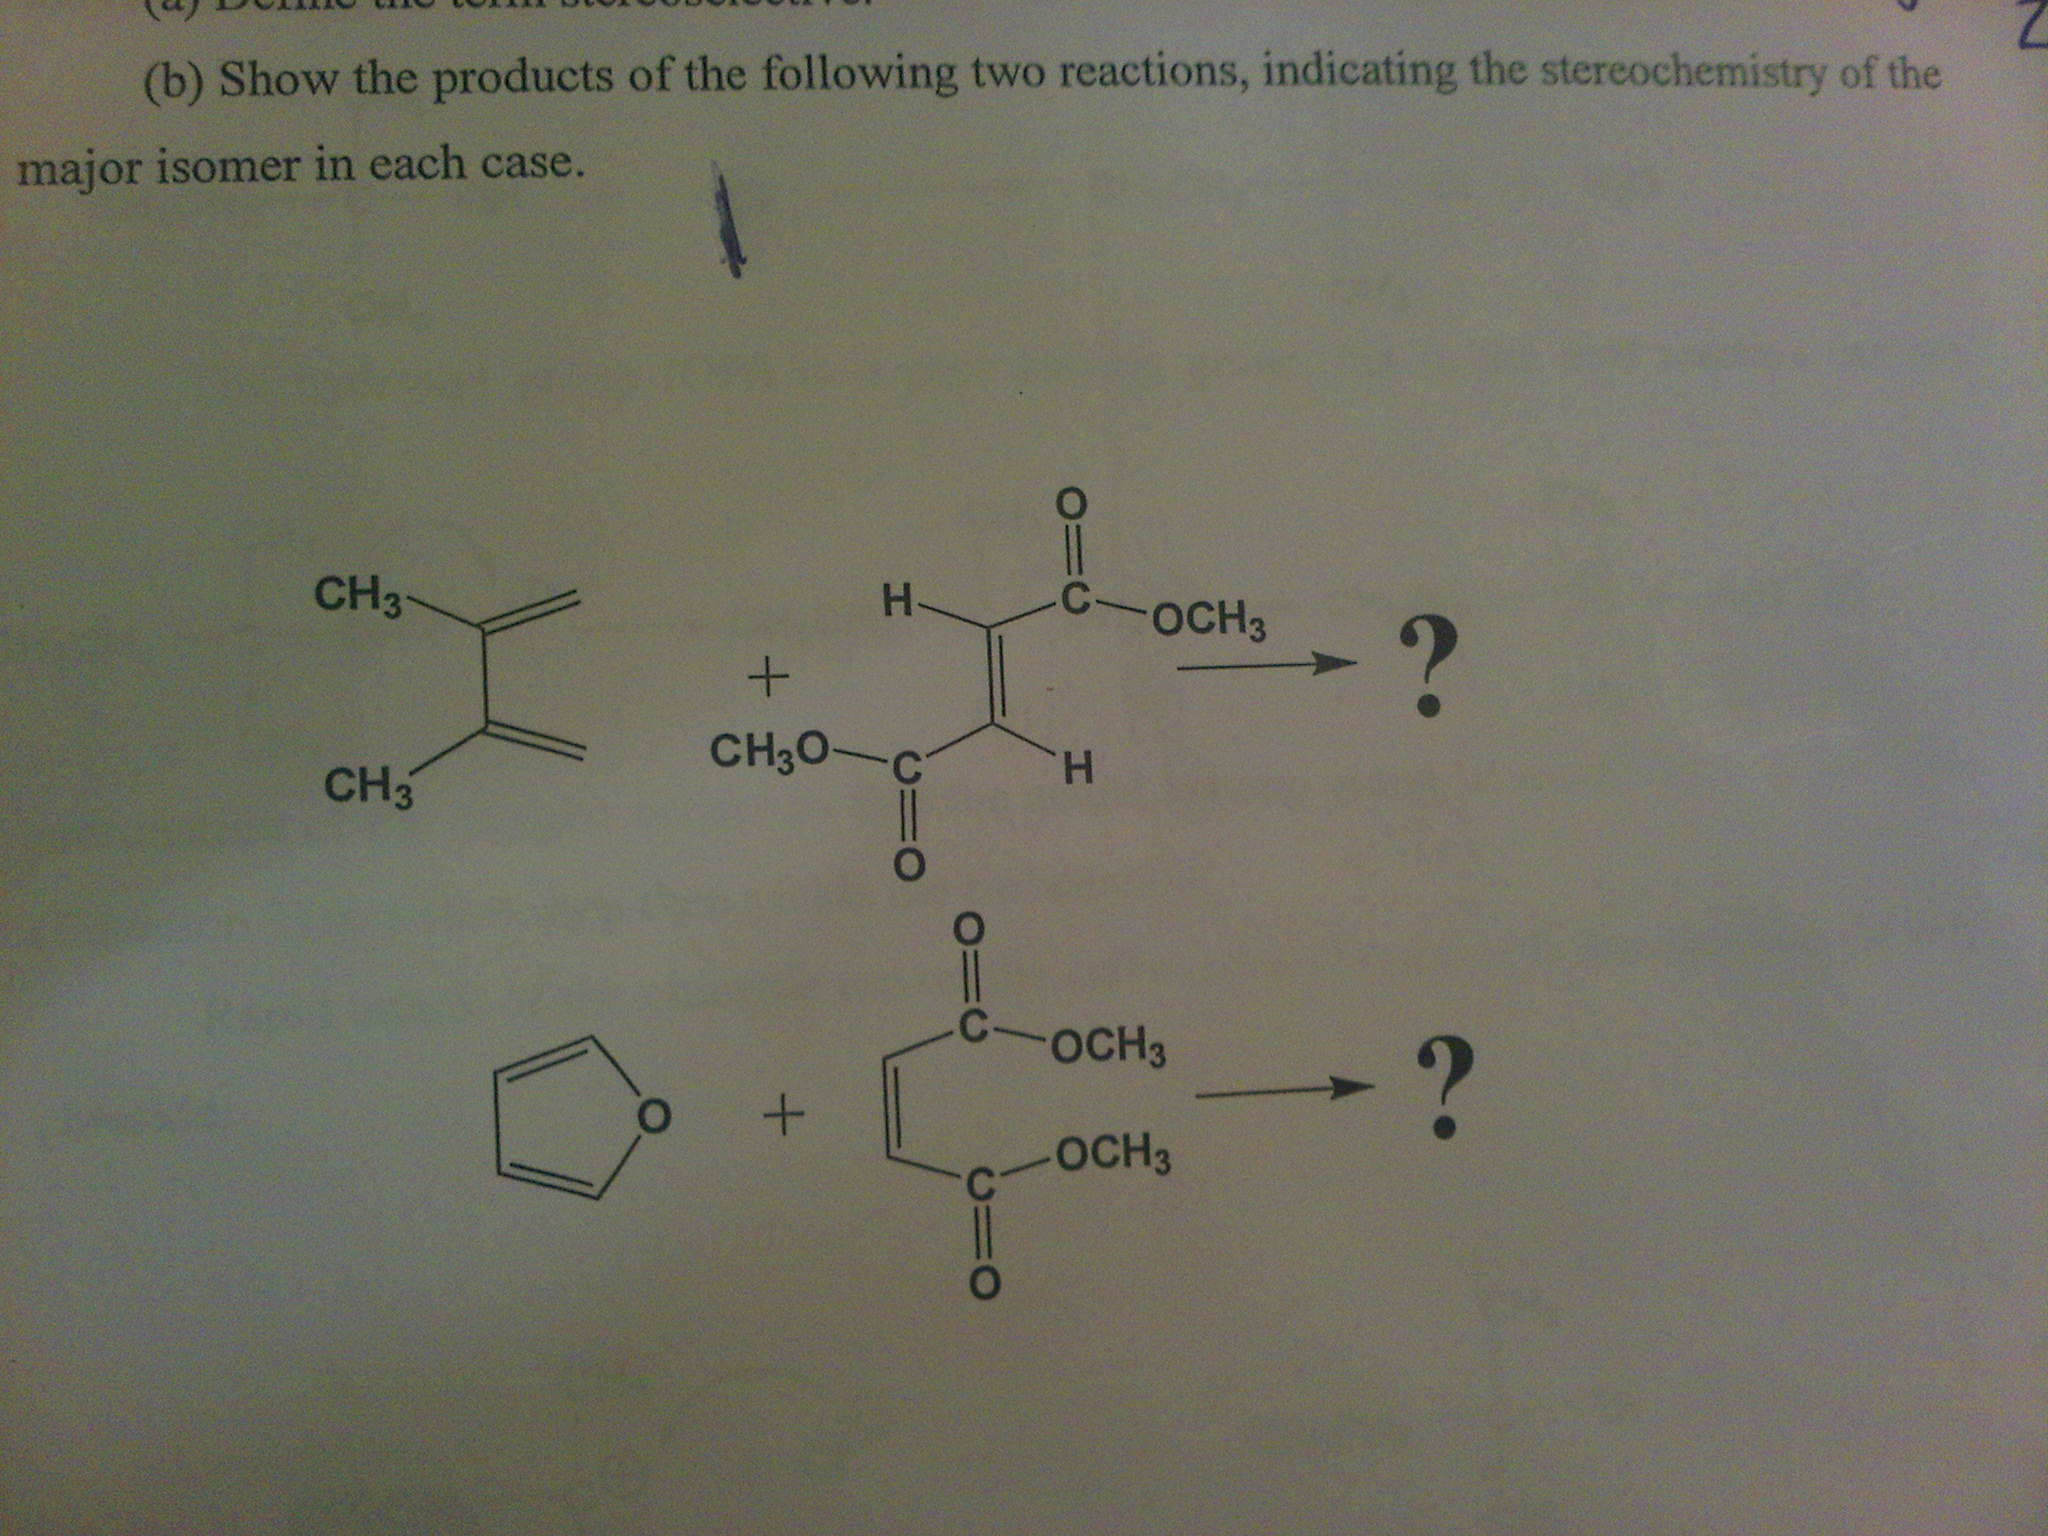 Show the products of the following two reactions,